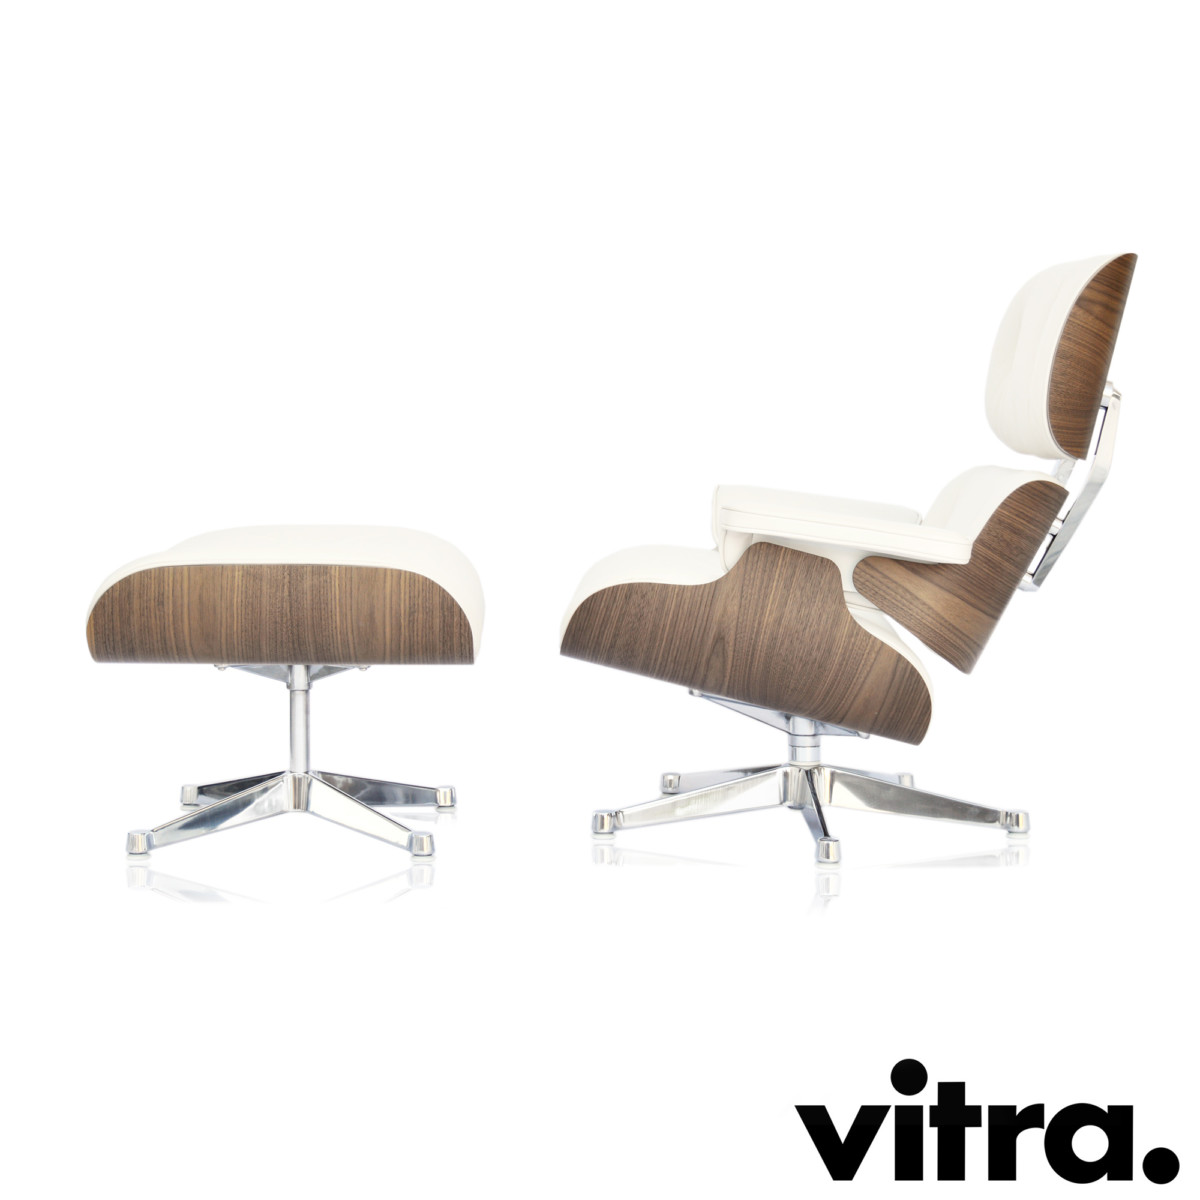 vitra eames lounge chair xl ottoman zum sonderpreis bei midmodern. Black Bedroom Furniture Sets. Home Design Ideas